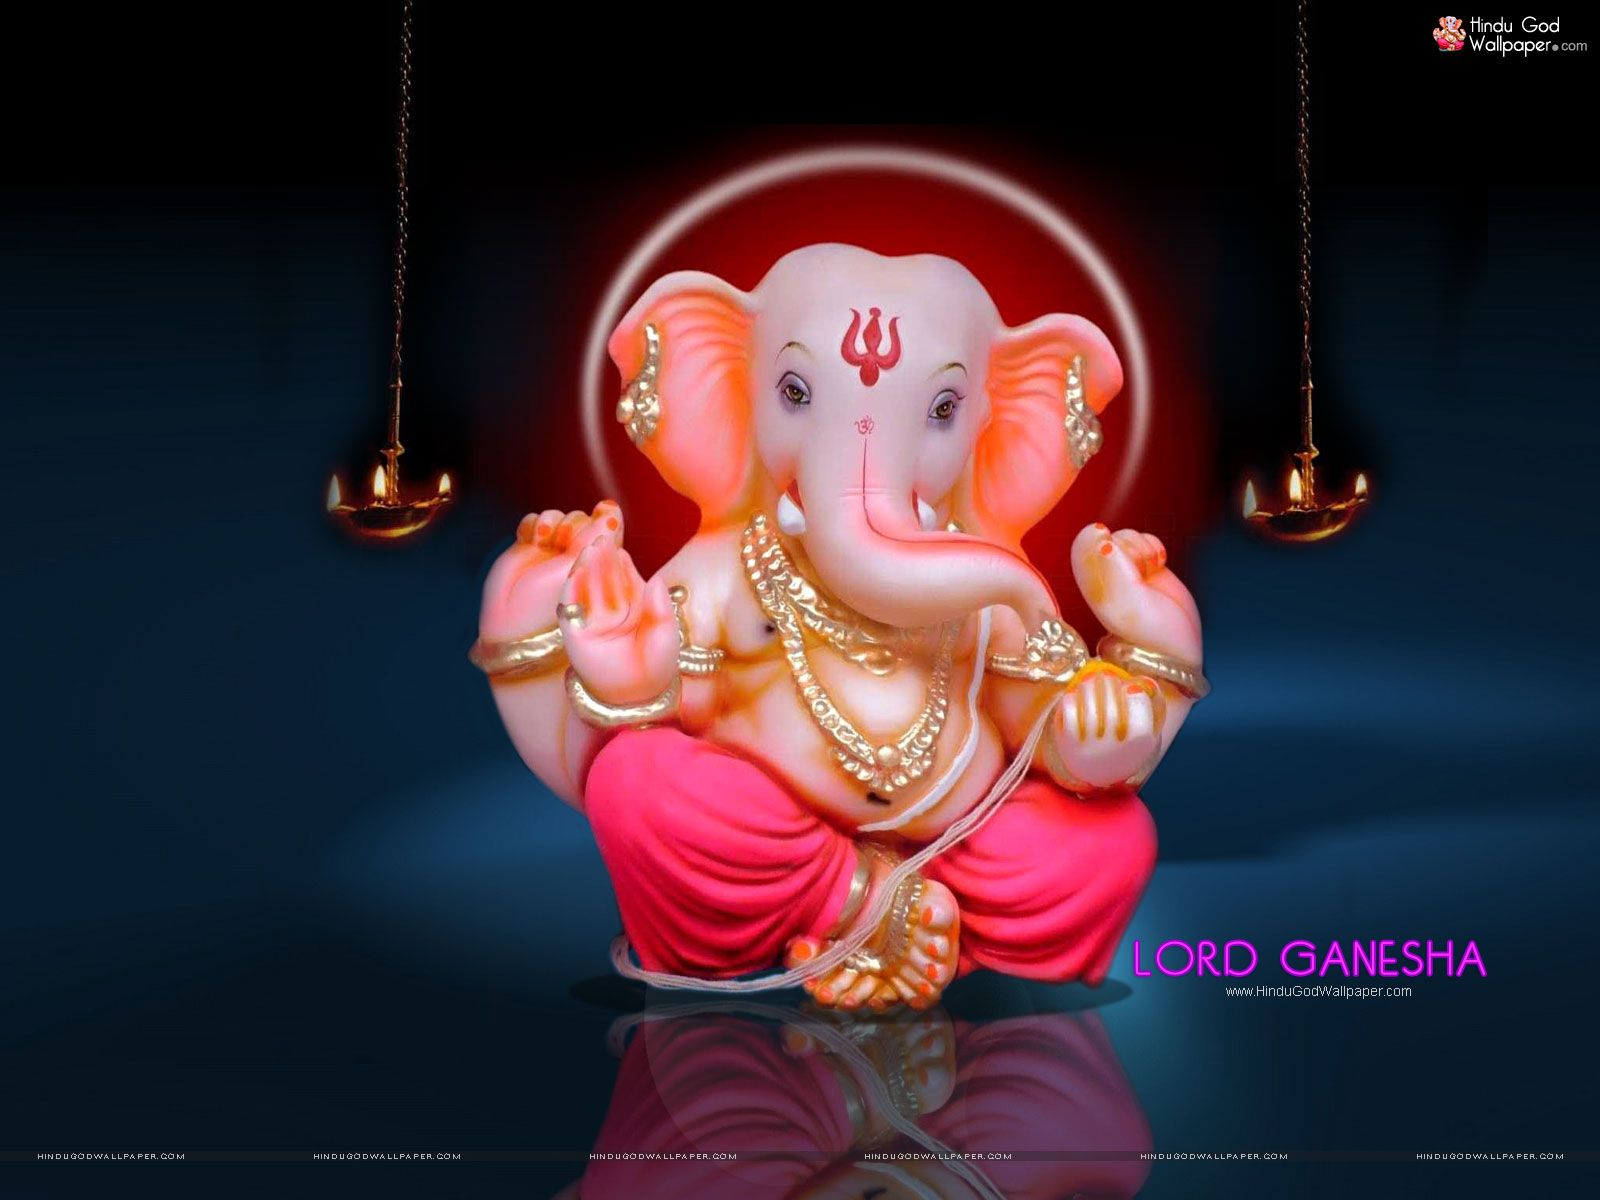 Pin By Anuradha Gn On Ganesh Images In 2020 Ganesh Images Happy Ganesh Chaturthi Images Ganesh Wallpaper